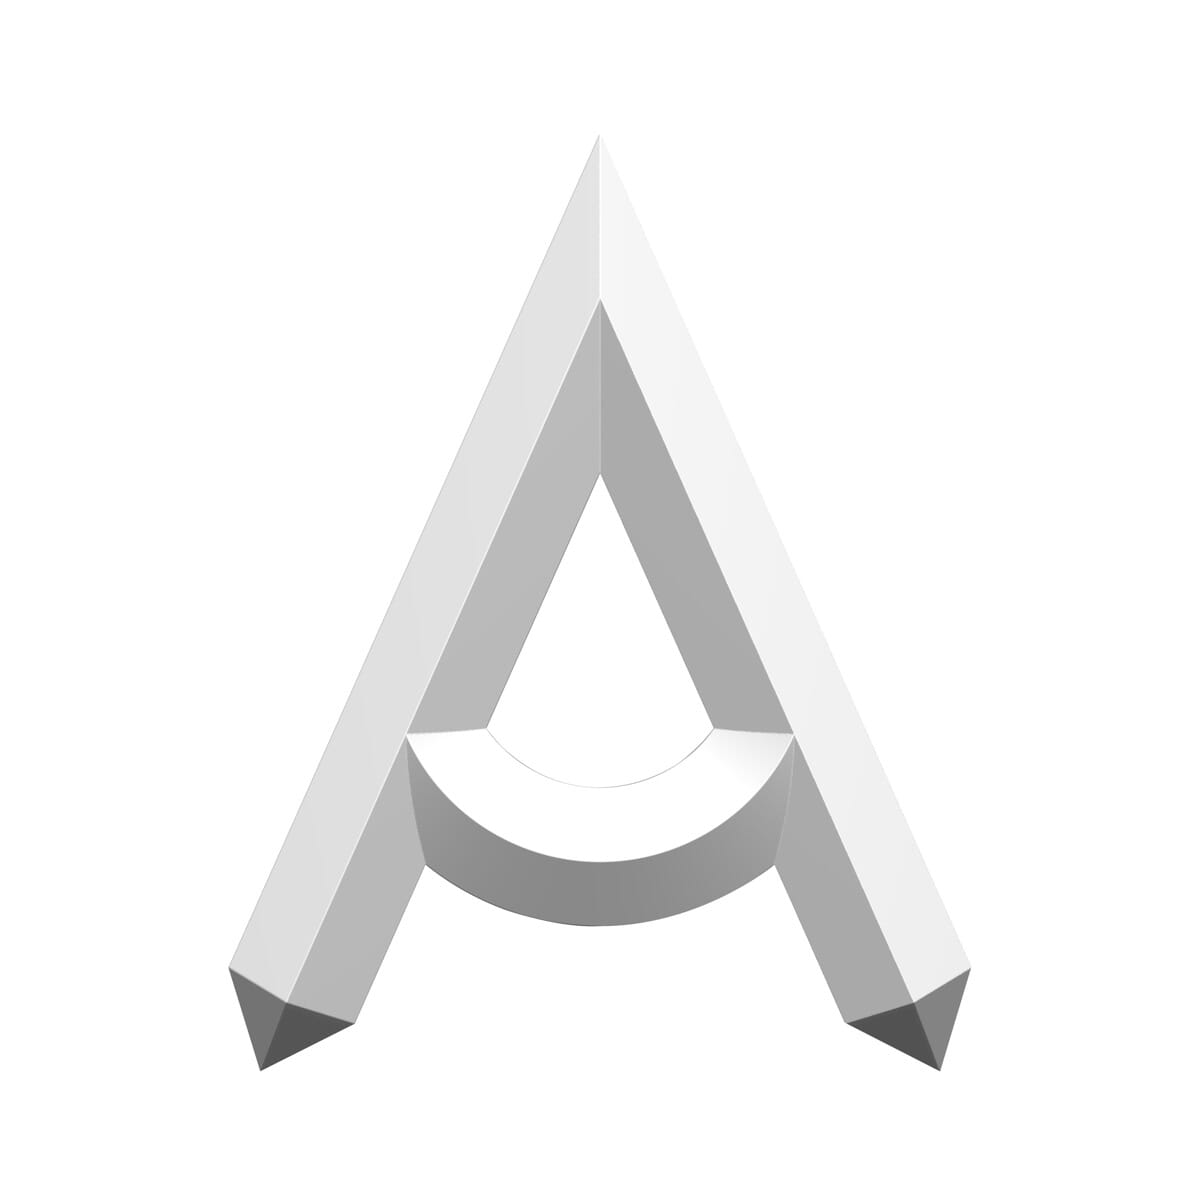 M6 x 25mm Torx Cap Head Captive Screws (ISO 14579) - Aluminium